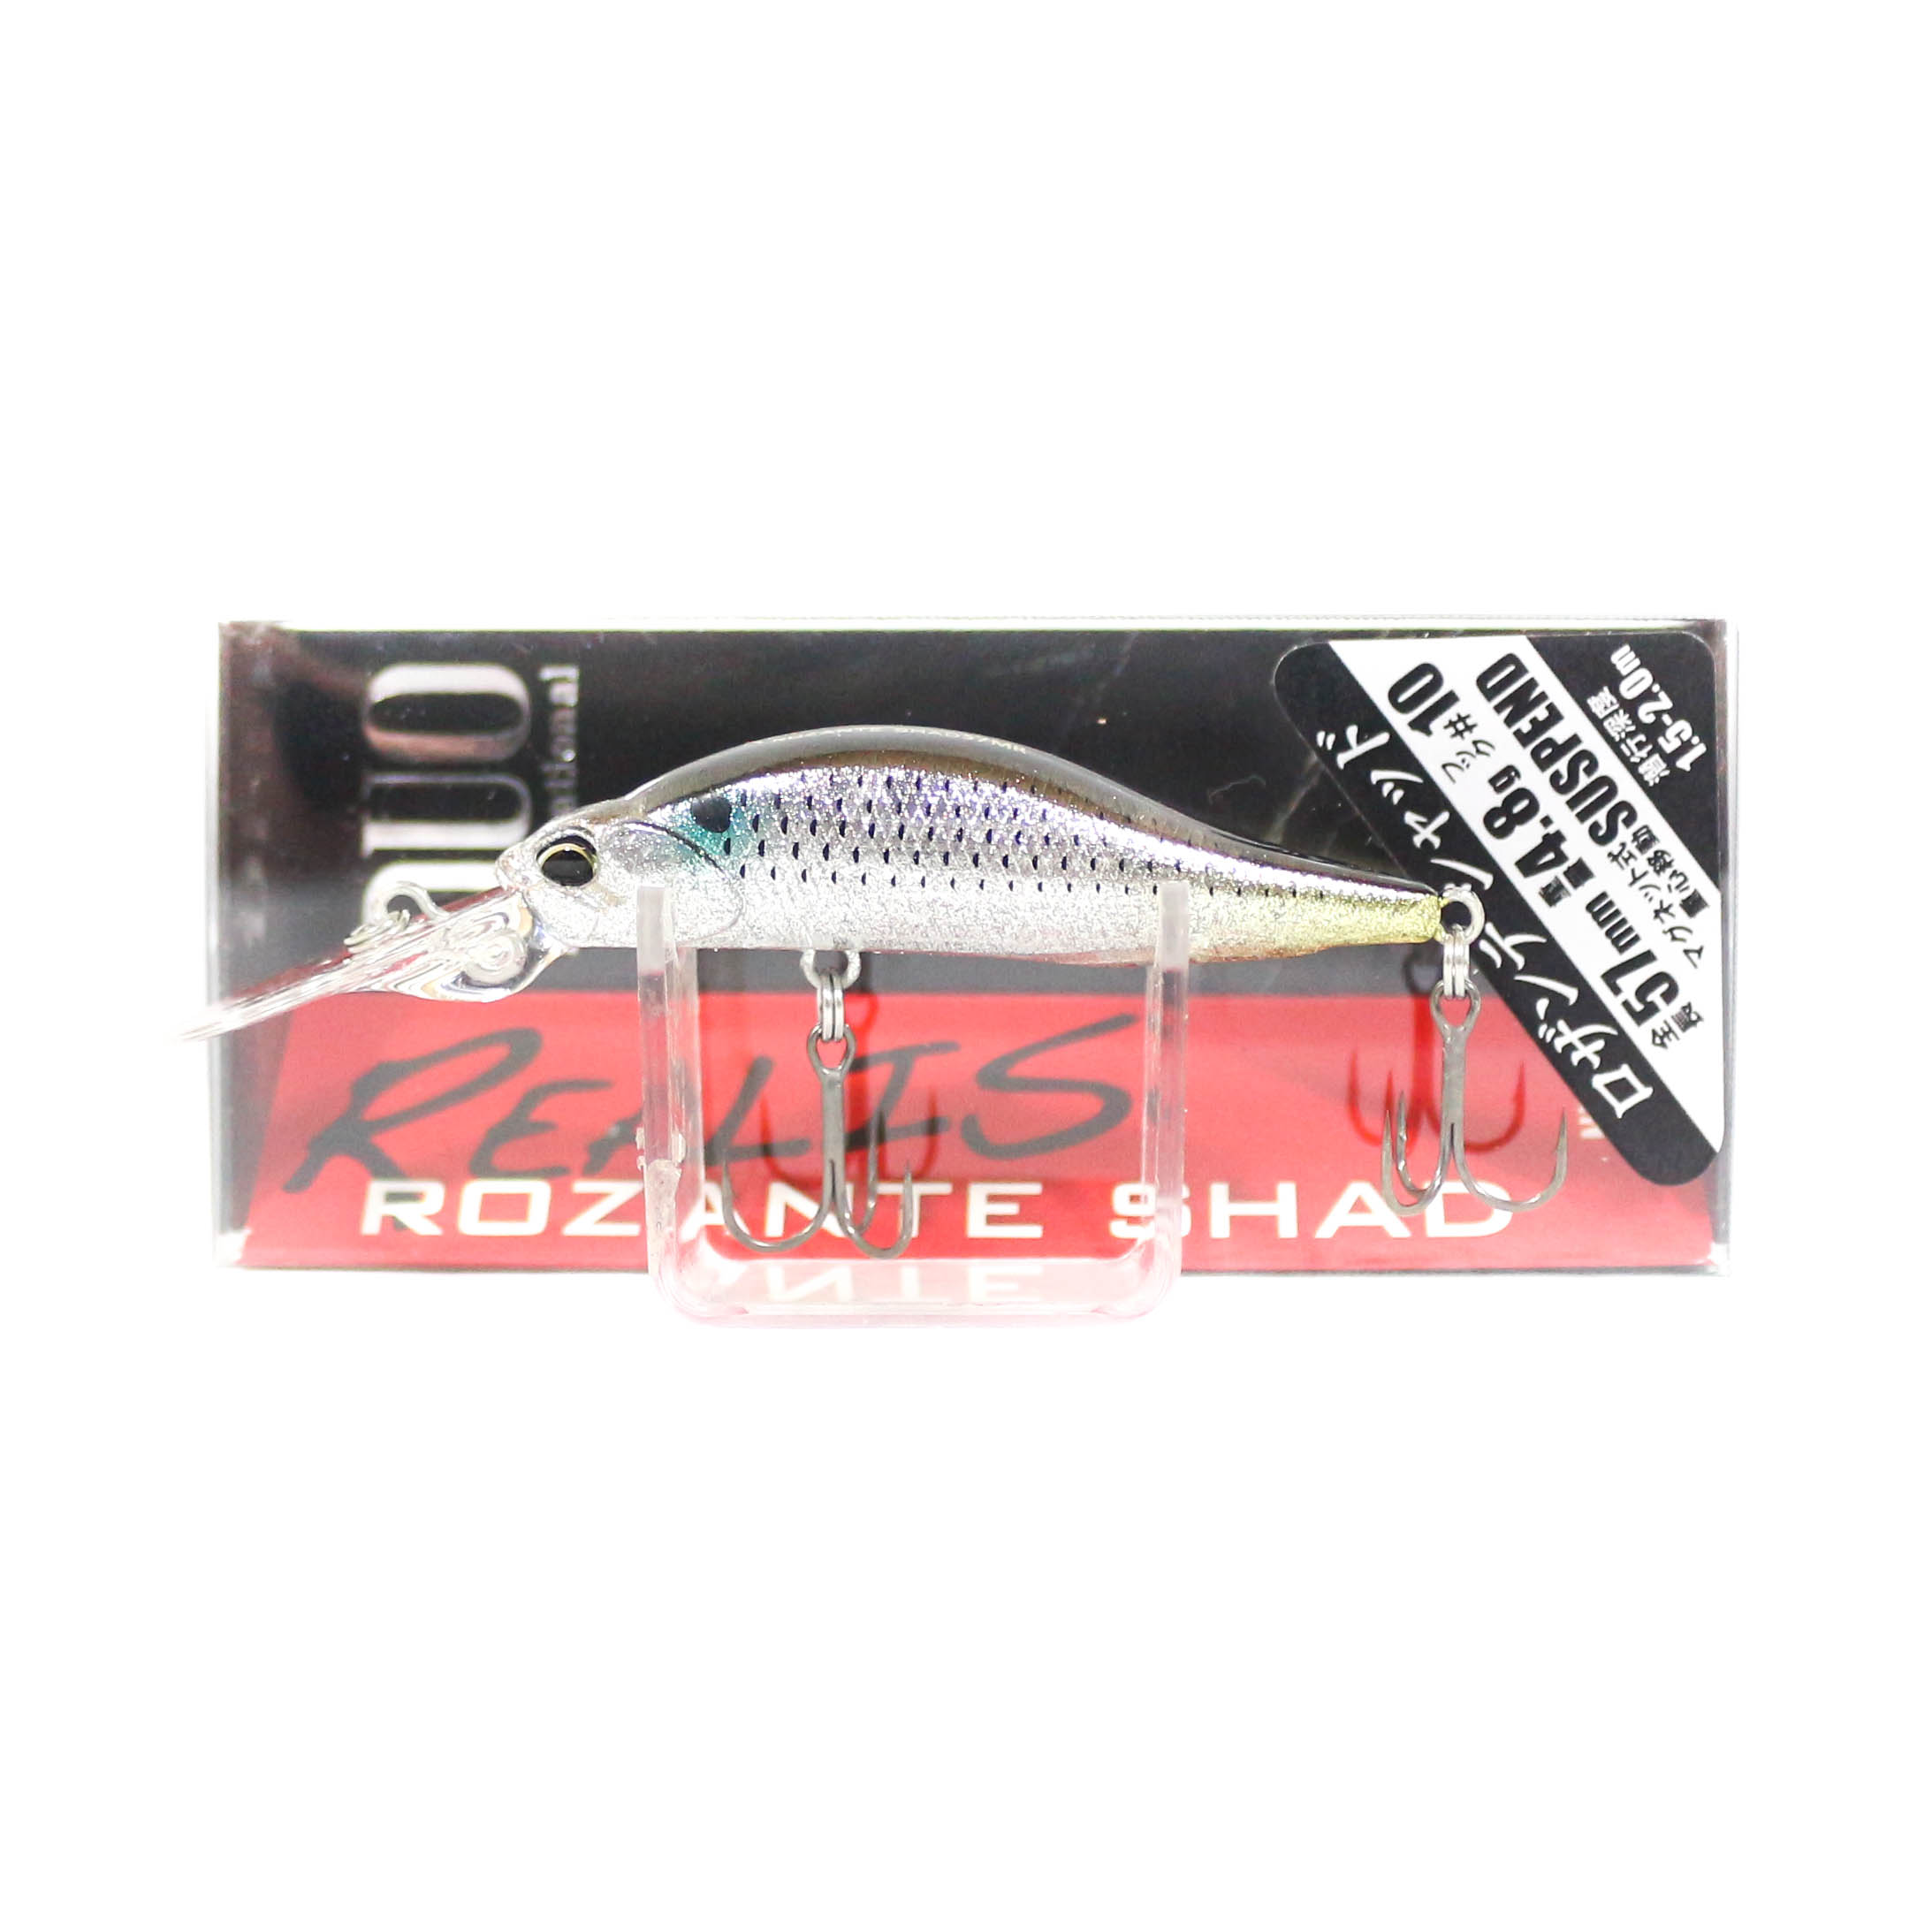 Duo Realis Rozante Shad 57 MR Suspend Lure CCC3237 (9270)